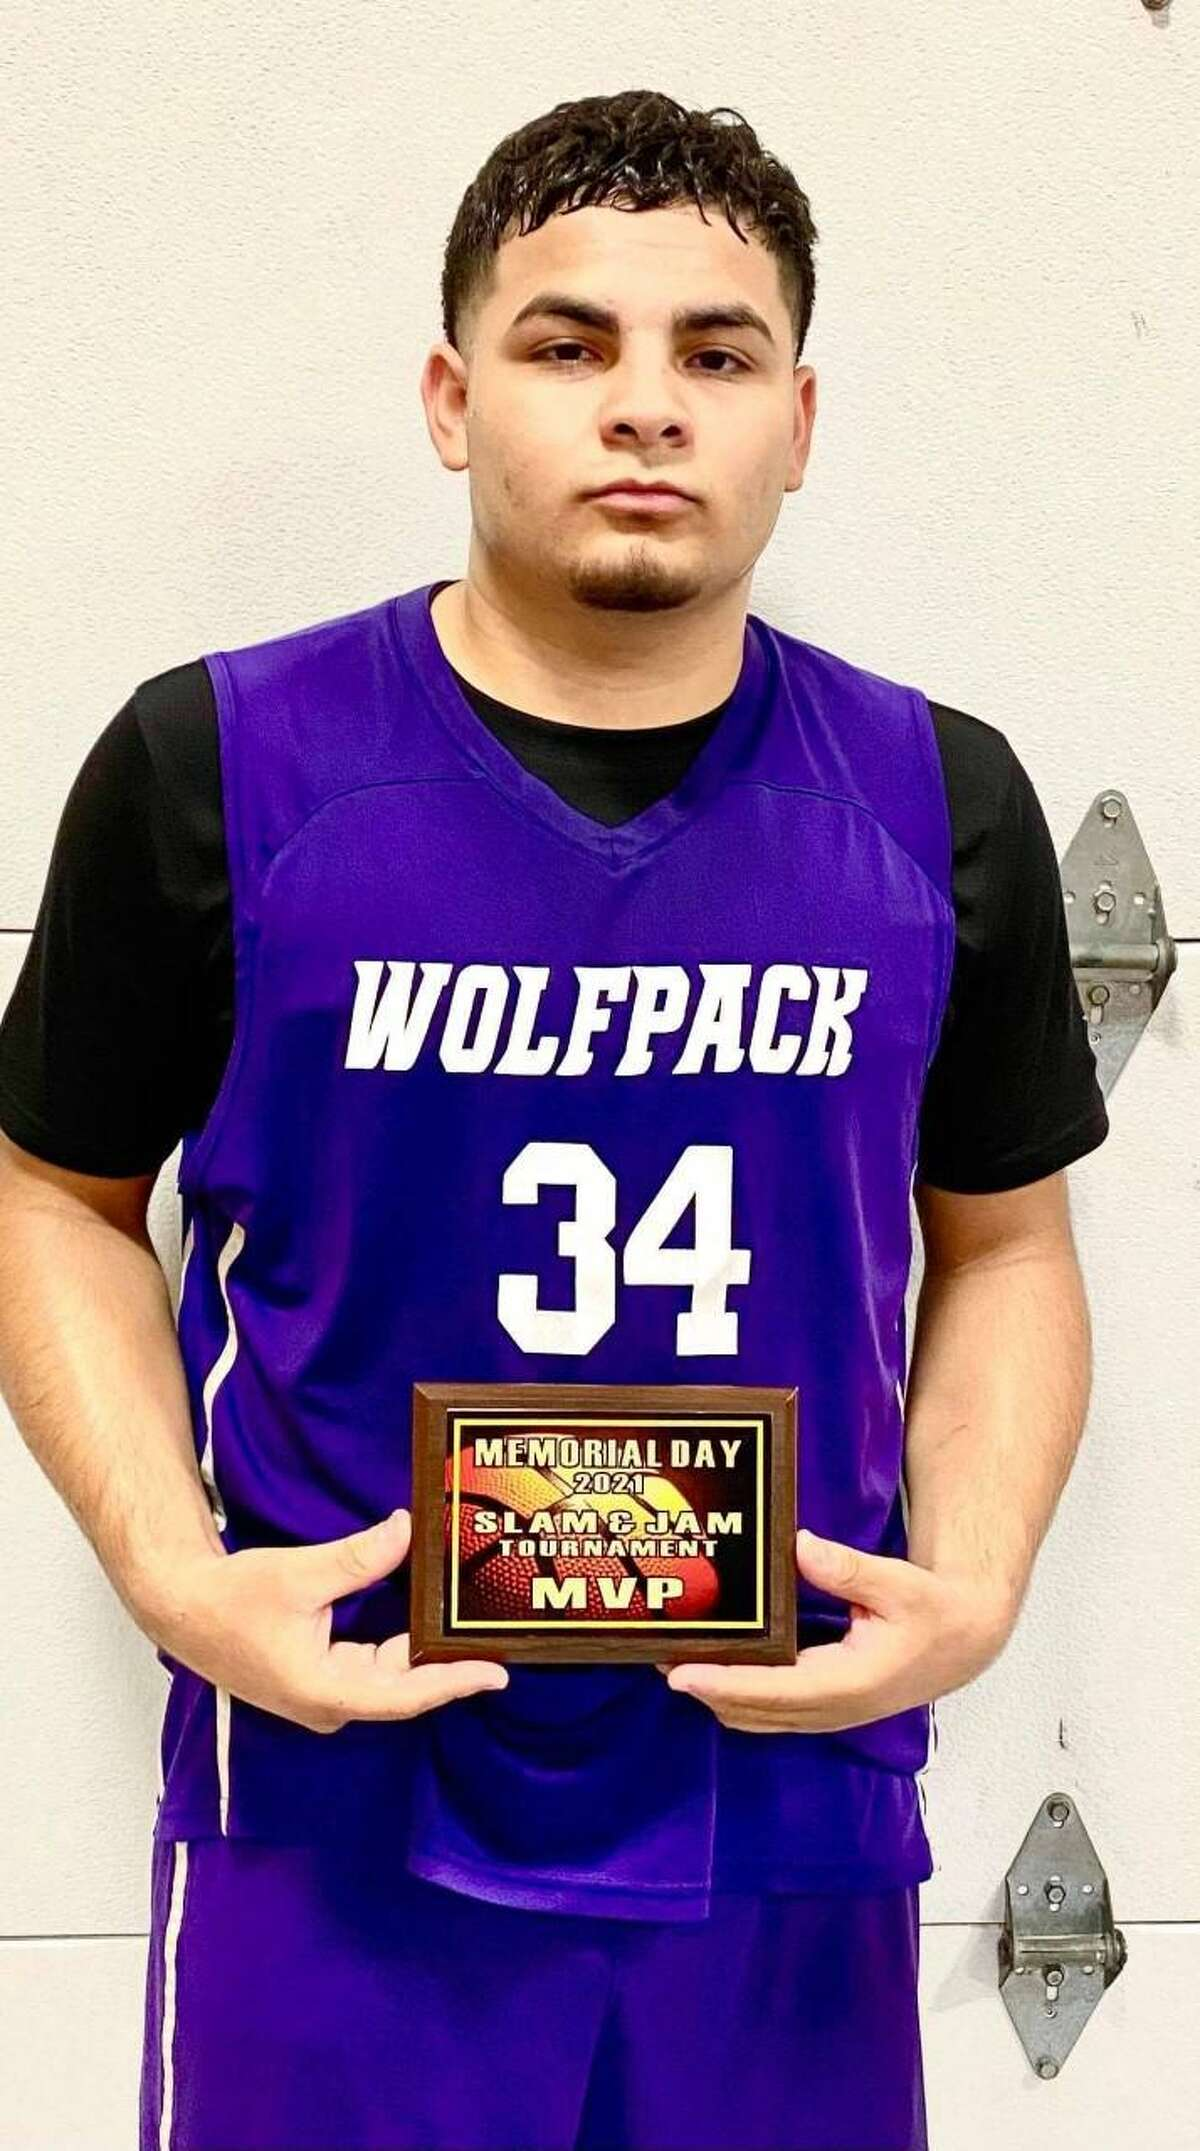 LBJ's Juan Navarro was named the Most Valuable Player in the Memorial Day Classic Slam and Jam Tournament.